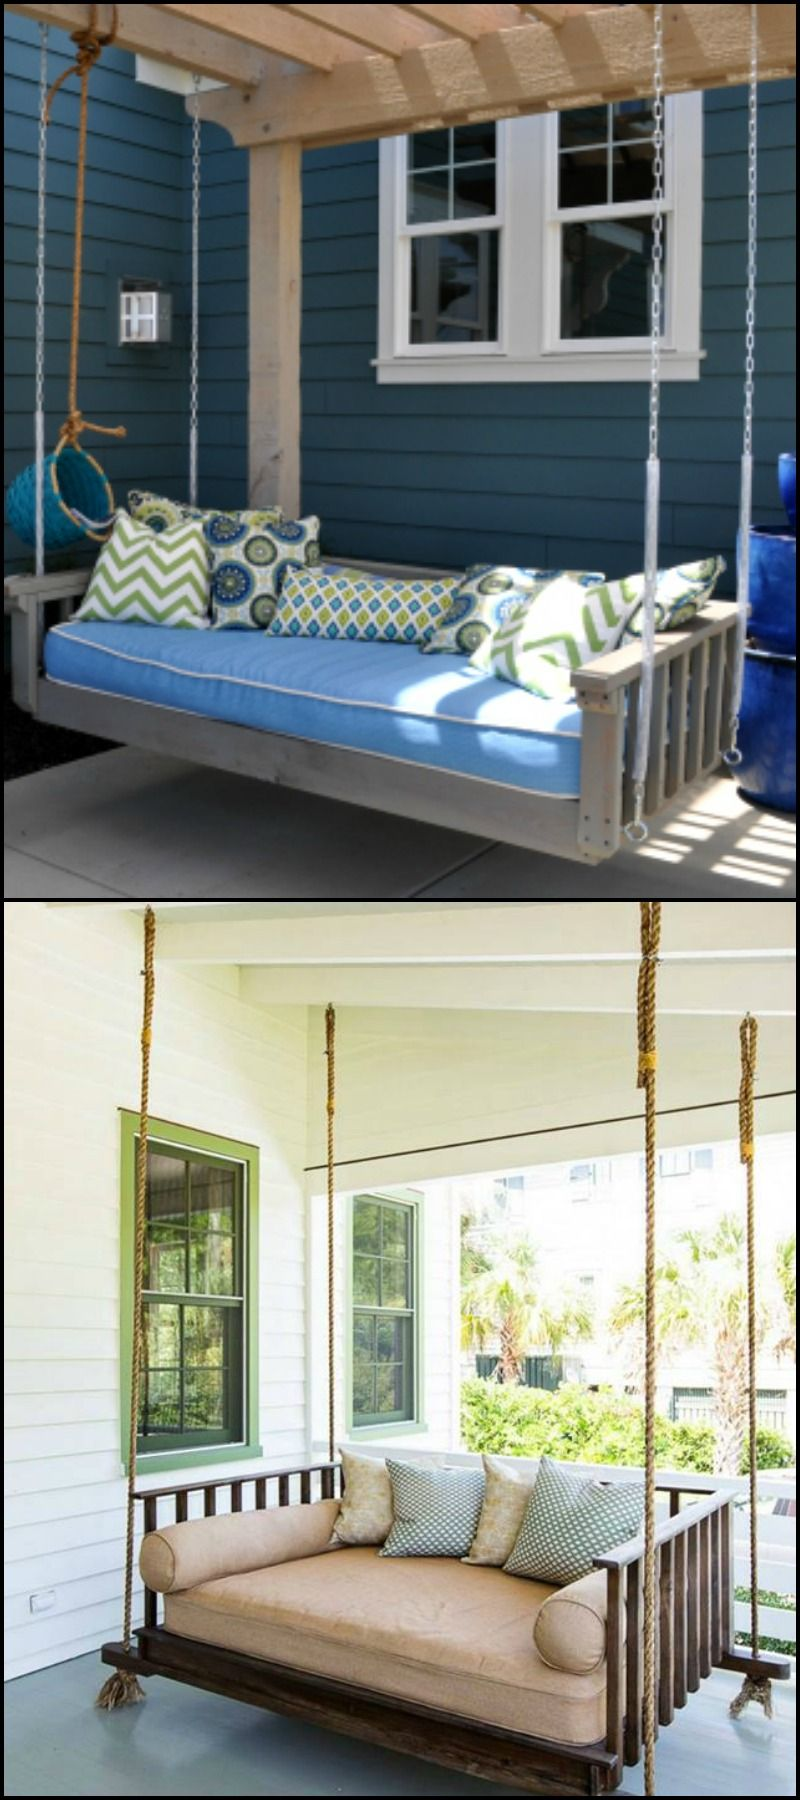 Ahh A Very Relaxing Hanging Daybed Is There Anybody Who Doesn T Want To Have This Piece Of Furniture In Their O Outdoor Bed Swing Daybed Swing Outdoor Daybed